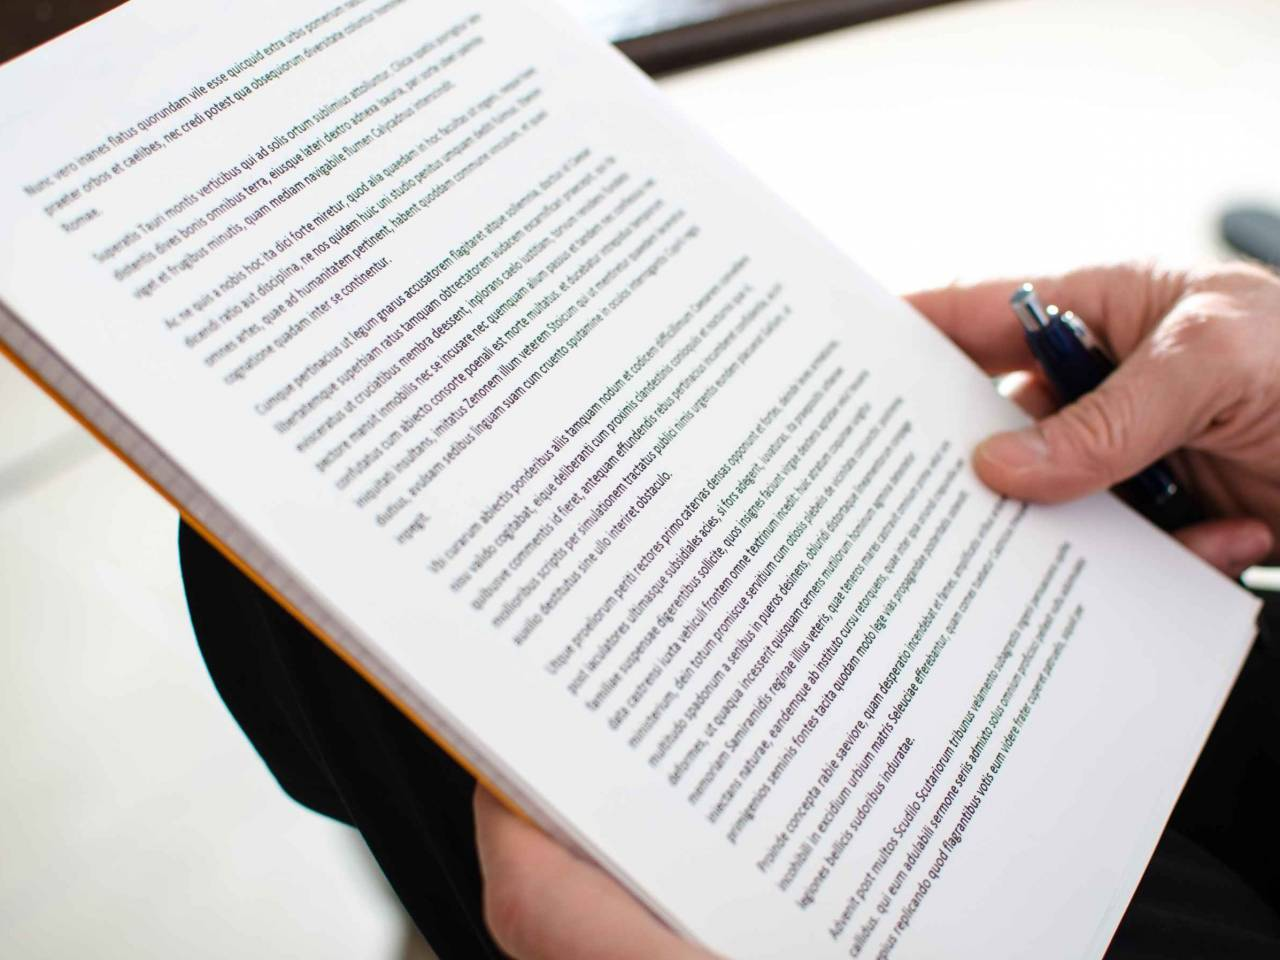 Personal reading legal document